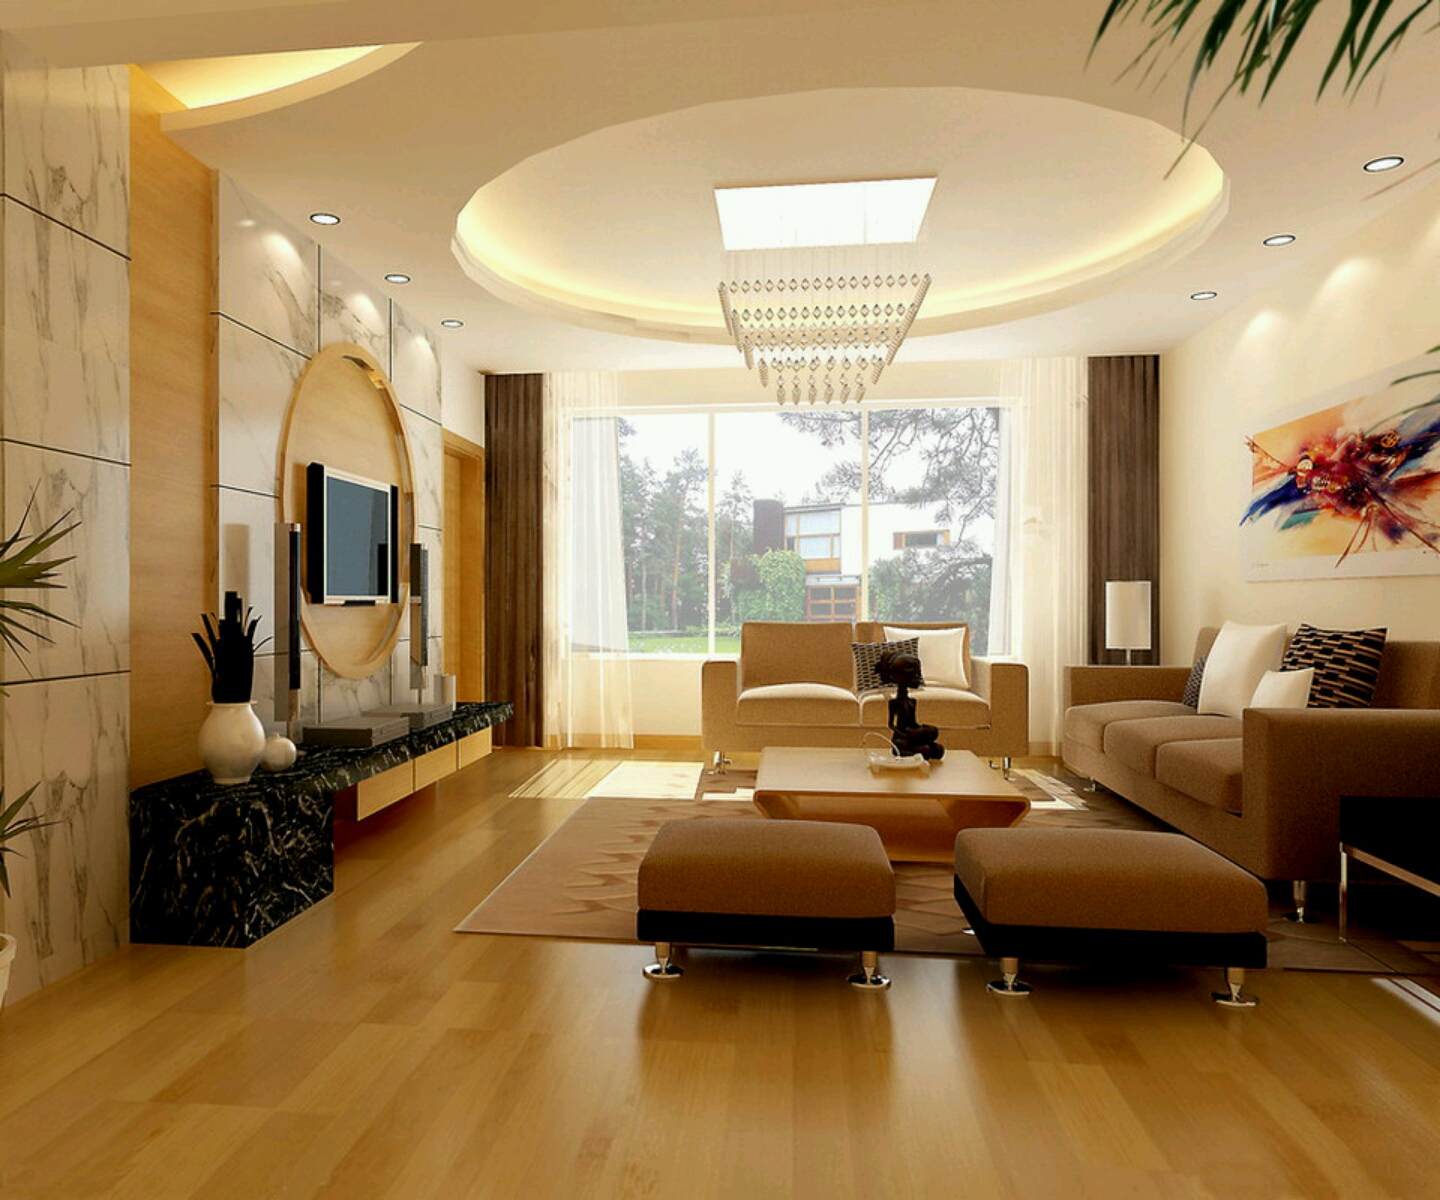 Modern interior decoration living rooms ceiling designs for Interior designs pictures